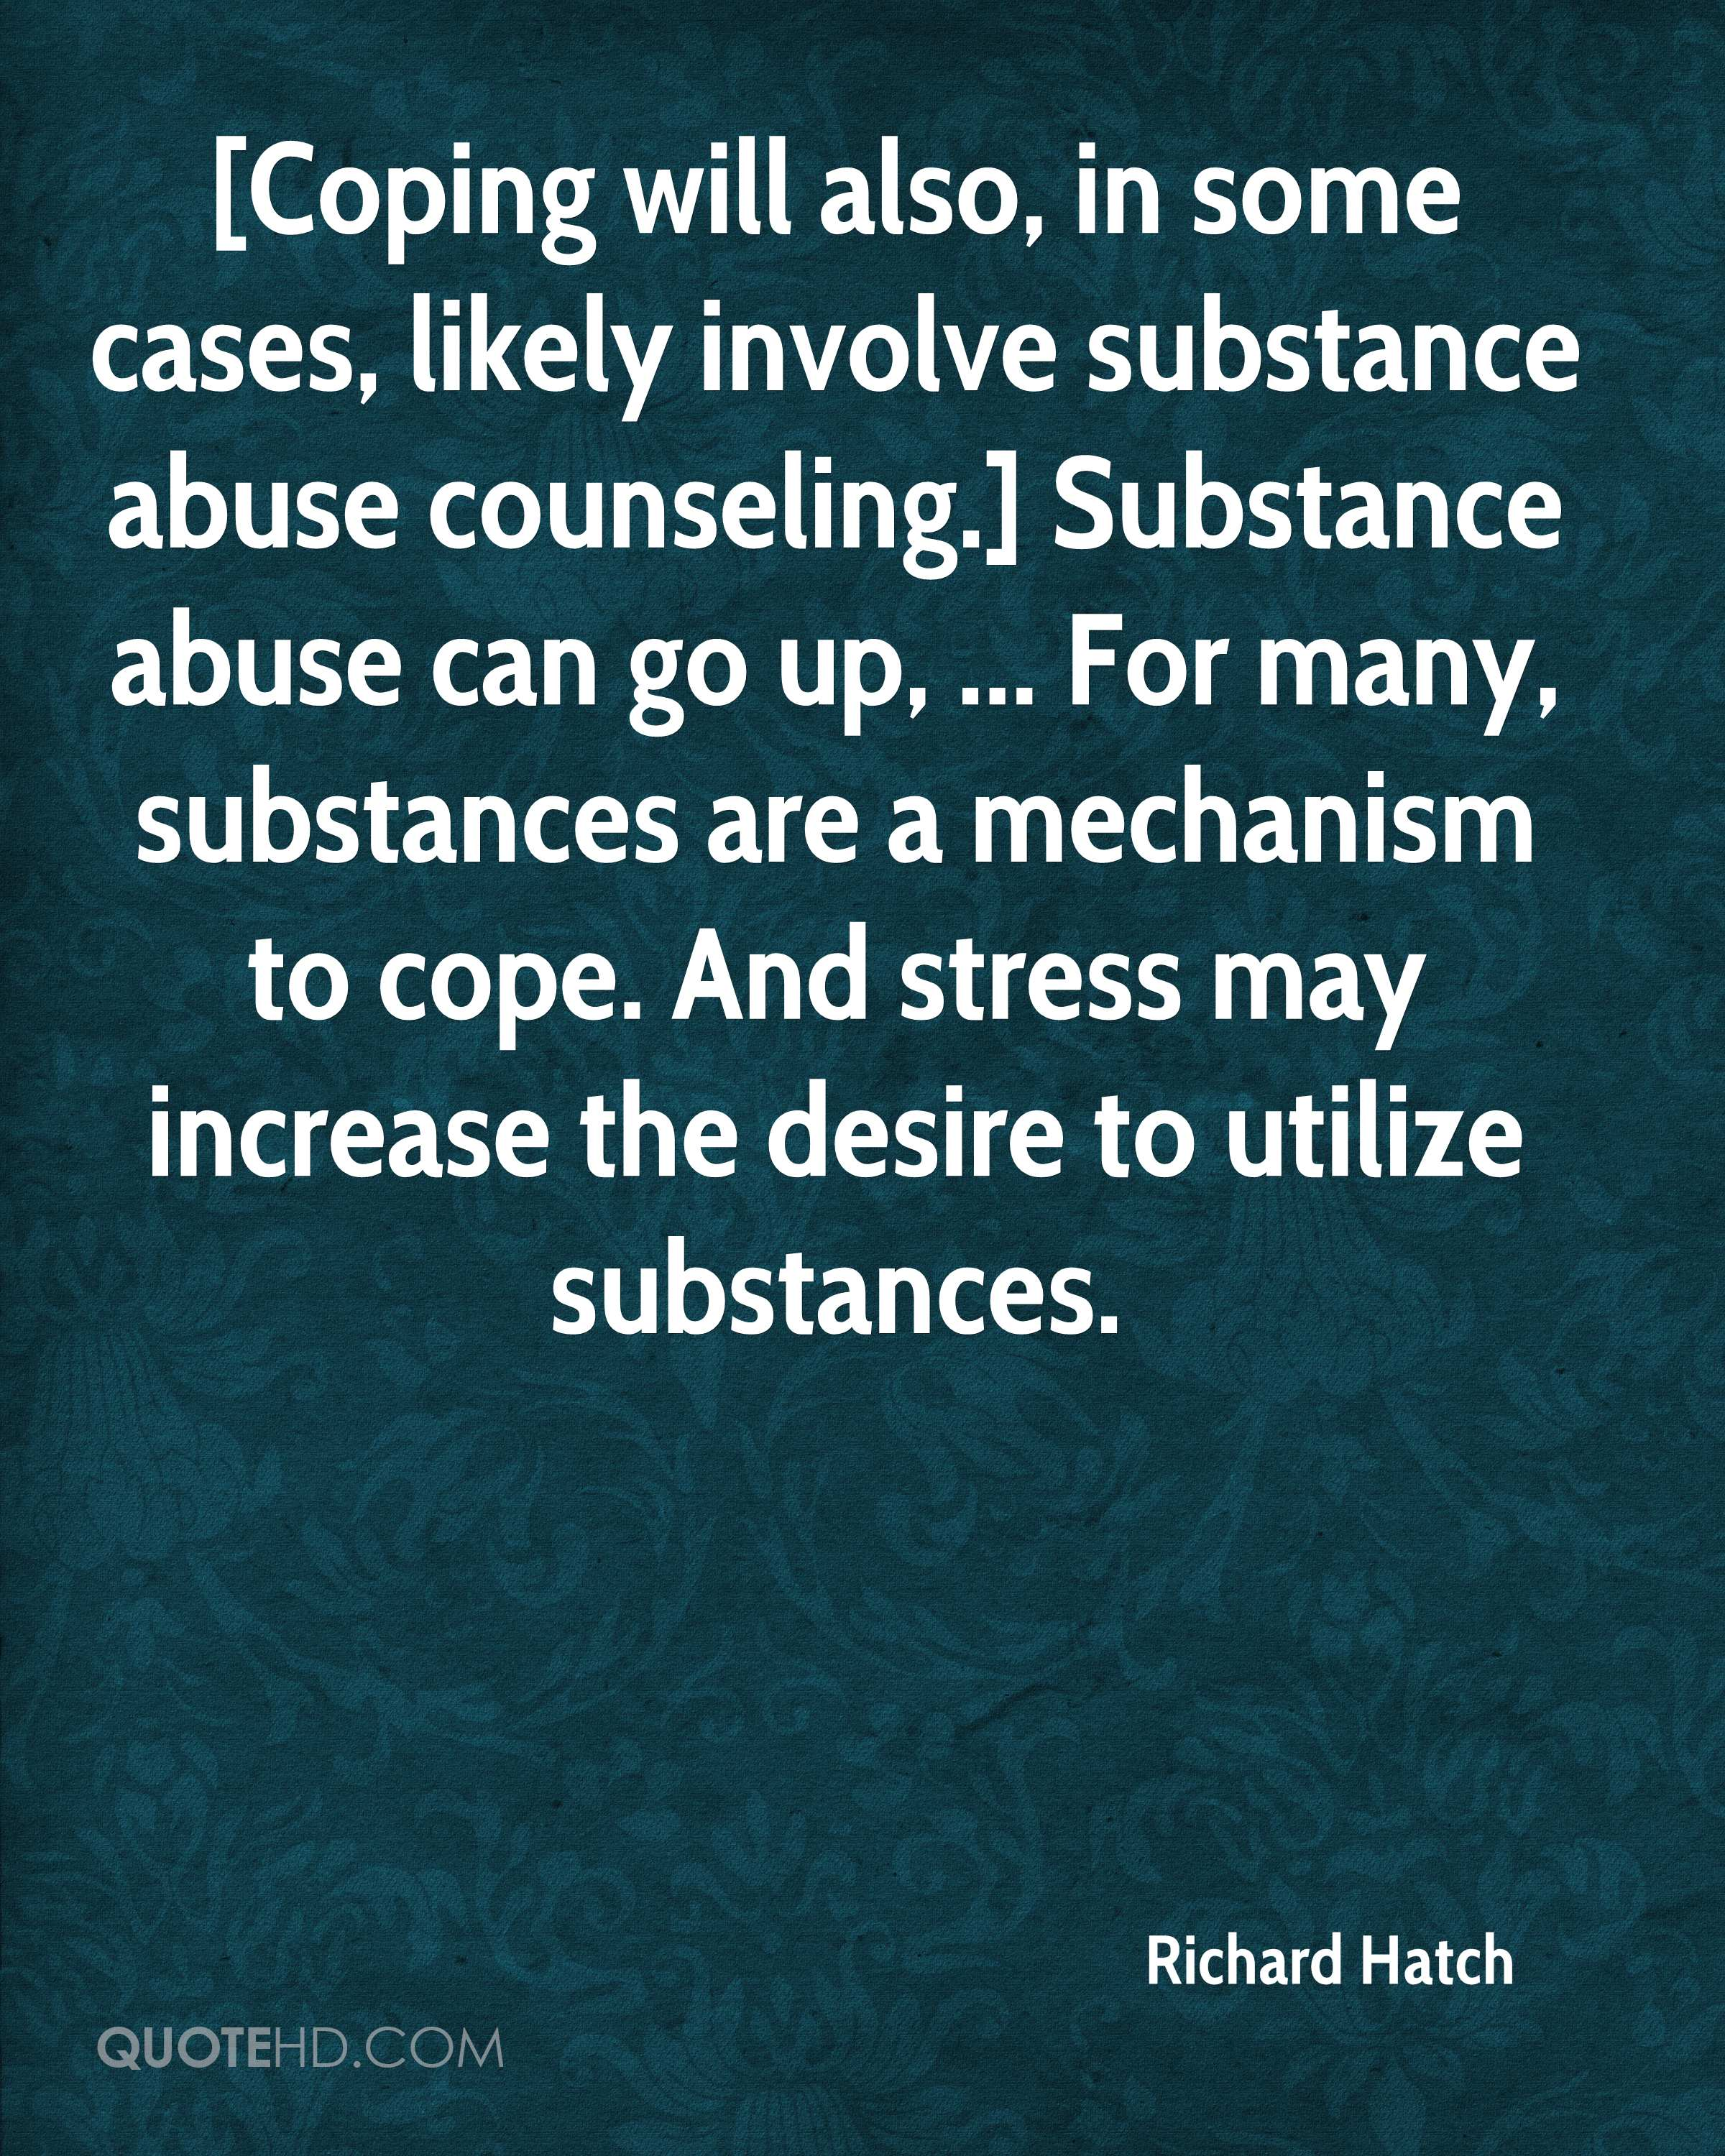 [Coping will also, in some cases, likely involve substance abuse counseling.] Substance abuse can go up, ... For many, substances are a mechanism to cope. And stress may increase the desire to utilize substances.